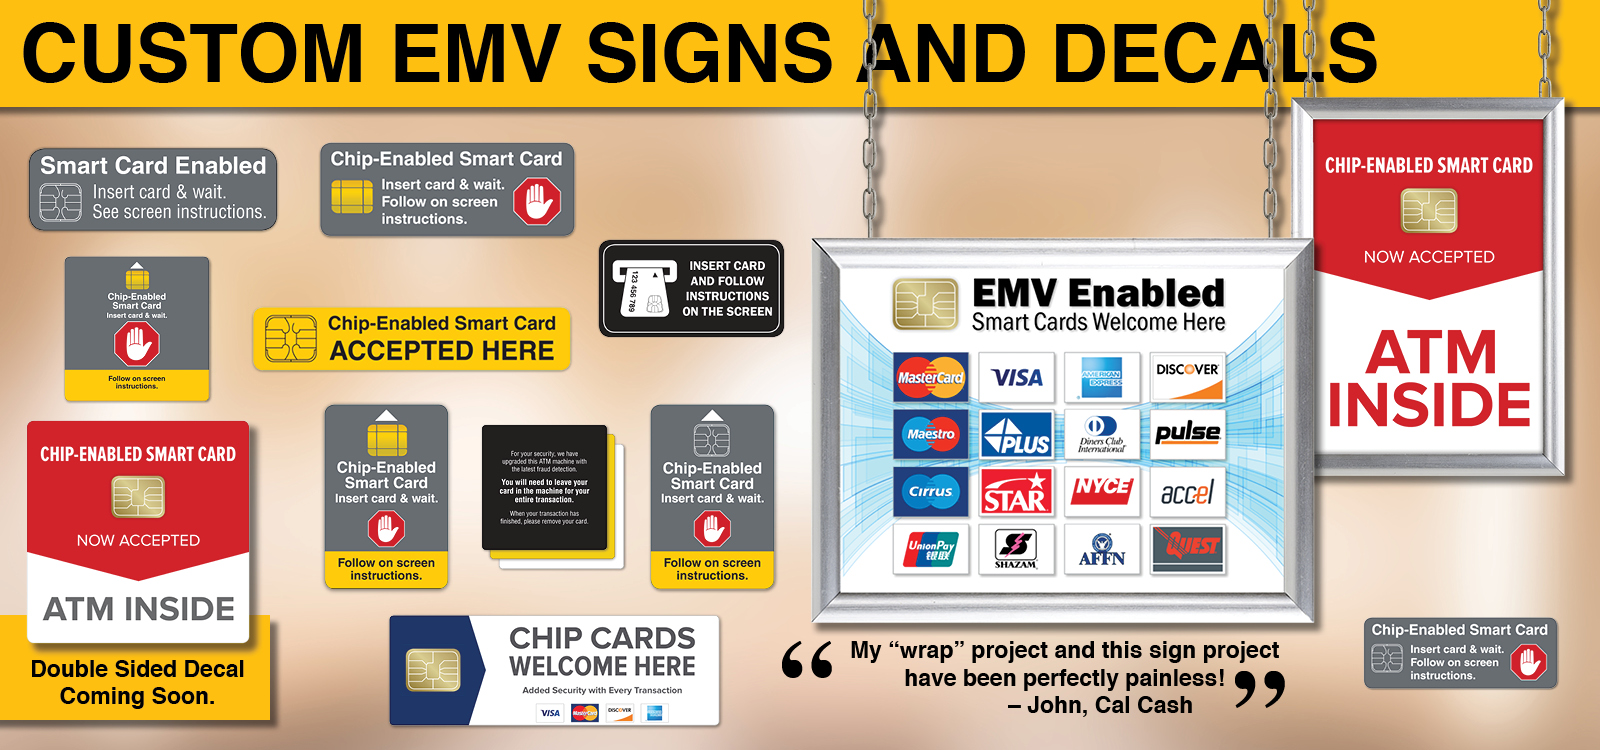 Emv Decals